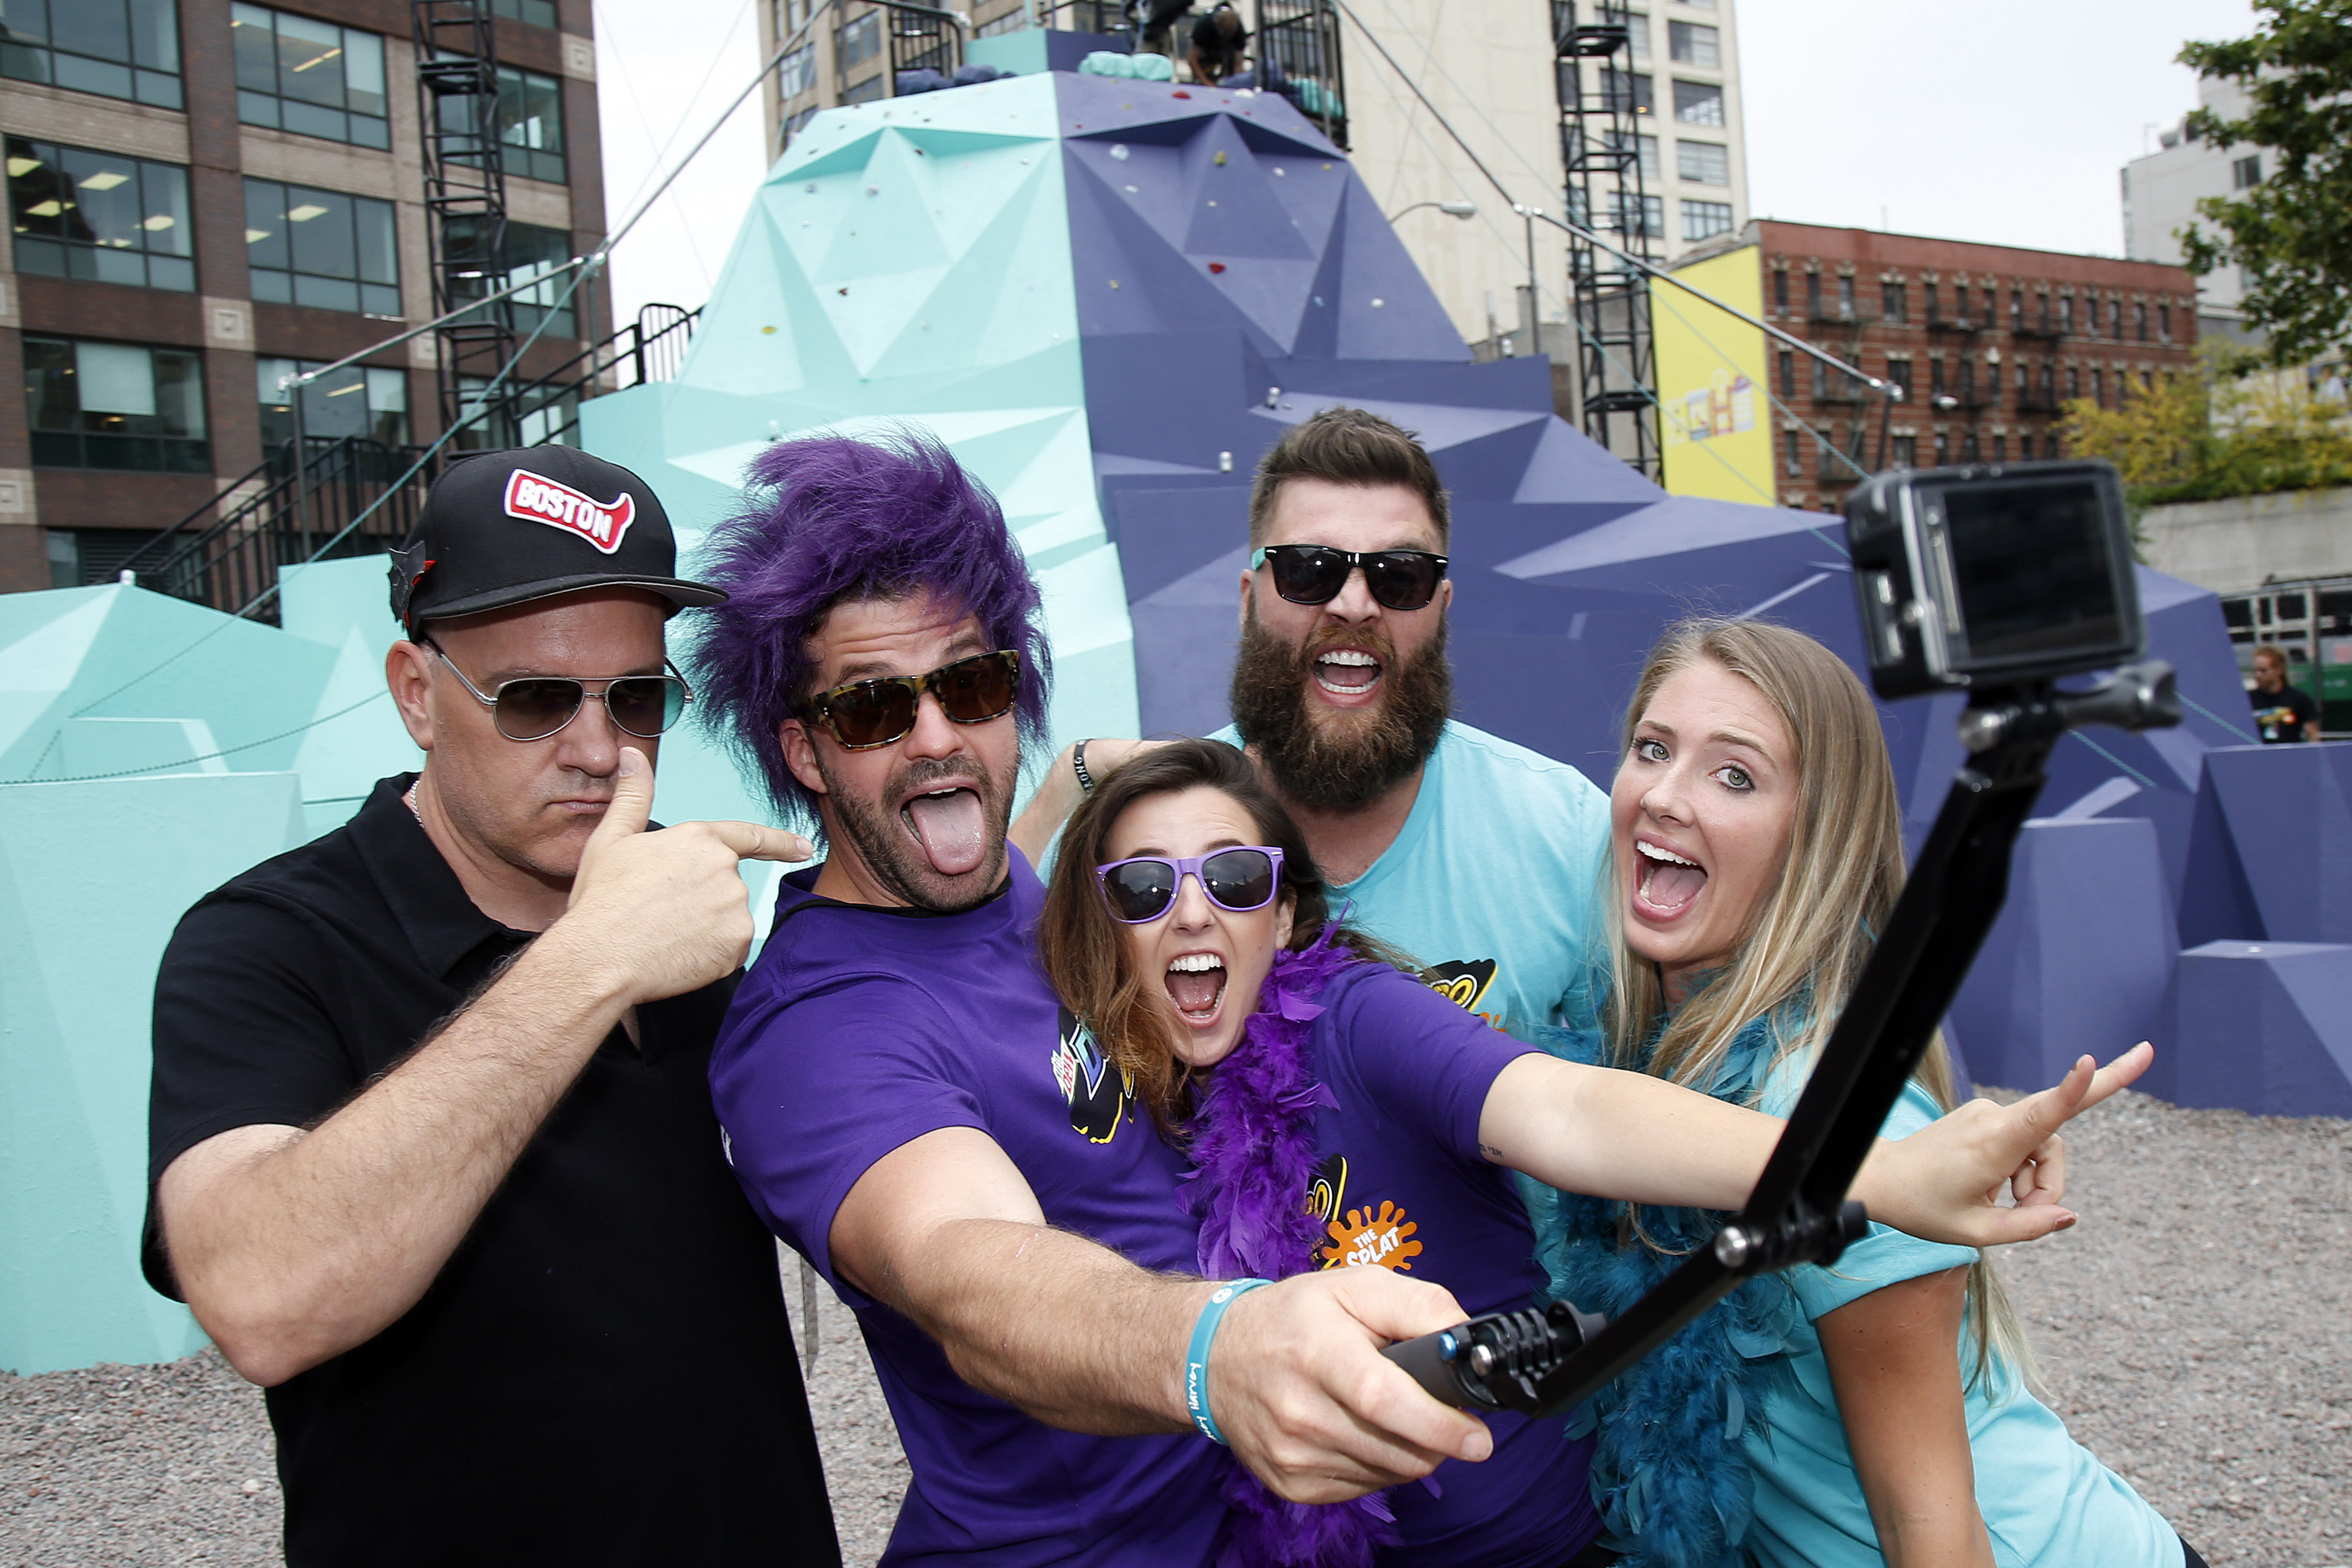 """From left, original GUTS host Mike O'Malley and members of MTV's The Challenge Johnny """"Bananas"""" Devenanzio, Camila Nakagawa, Chris """"CT"""" Tamburello and Jenna Compono relive a 90s dream at the MTN DEW DEWggro Crag Powered by The Splat event, Thursday, June 16, 2016 in New York, as part of MTN DEW's DEWcision campaign. Visit DEWcision.com for more information. (Jason DeCrow/AP Images for MTN DEW)"""